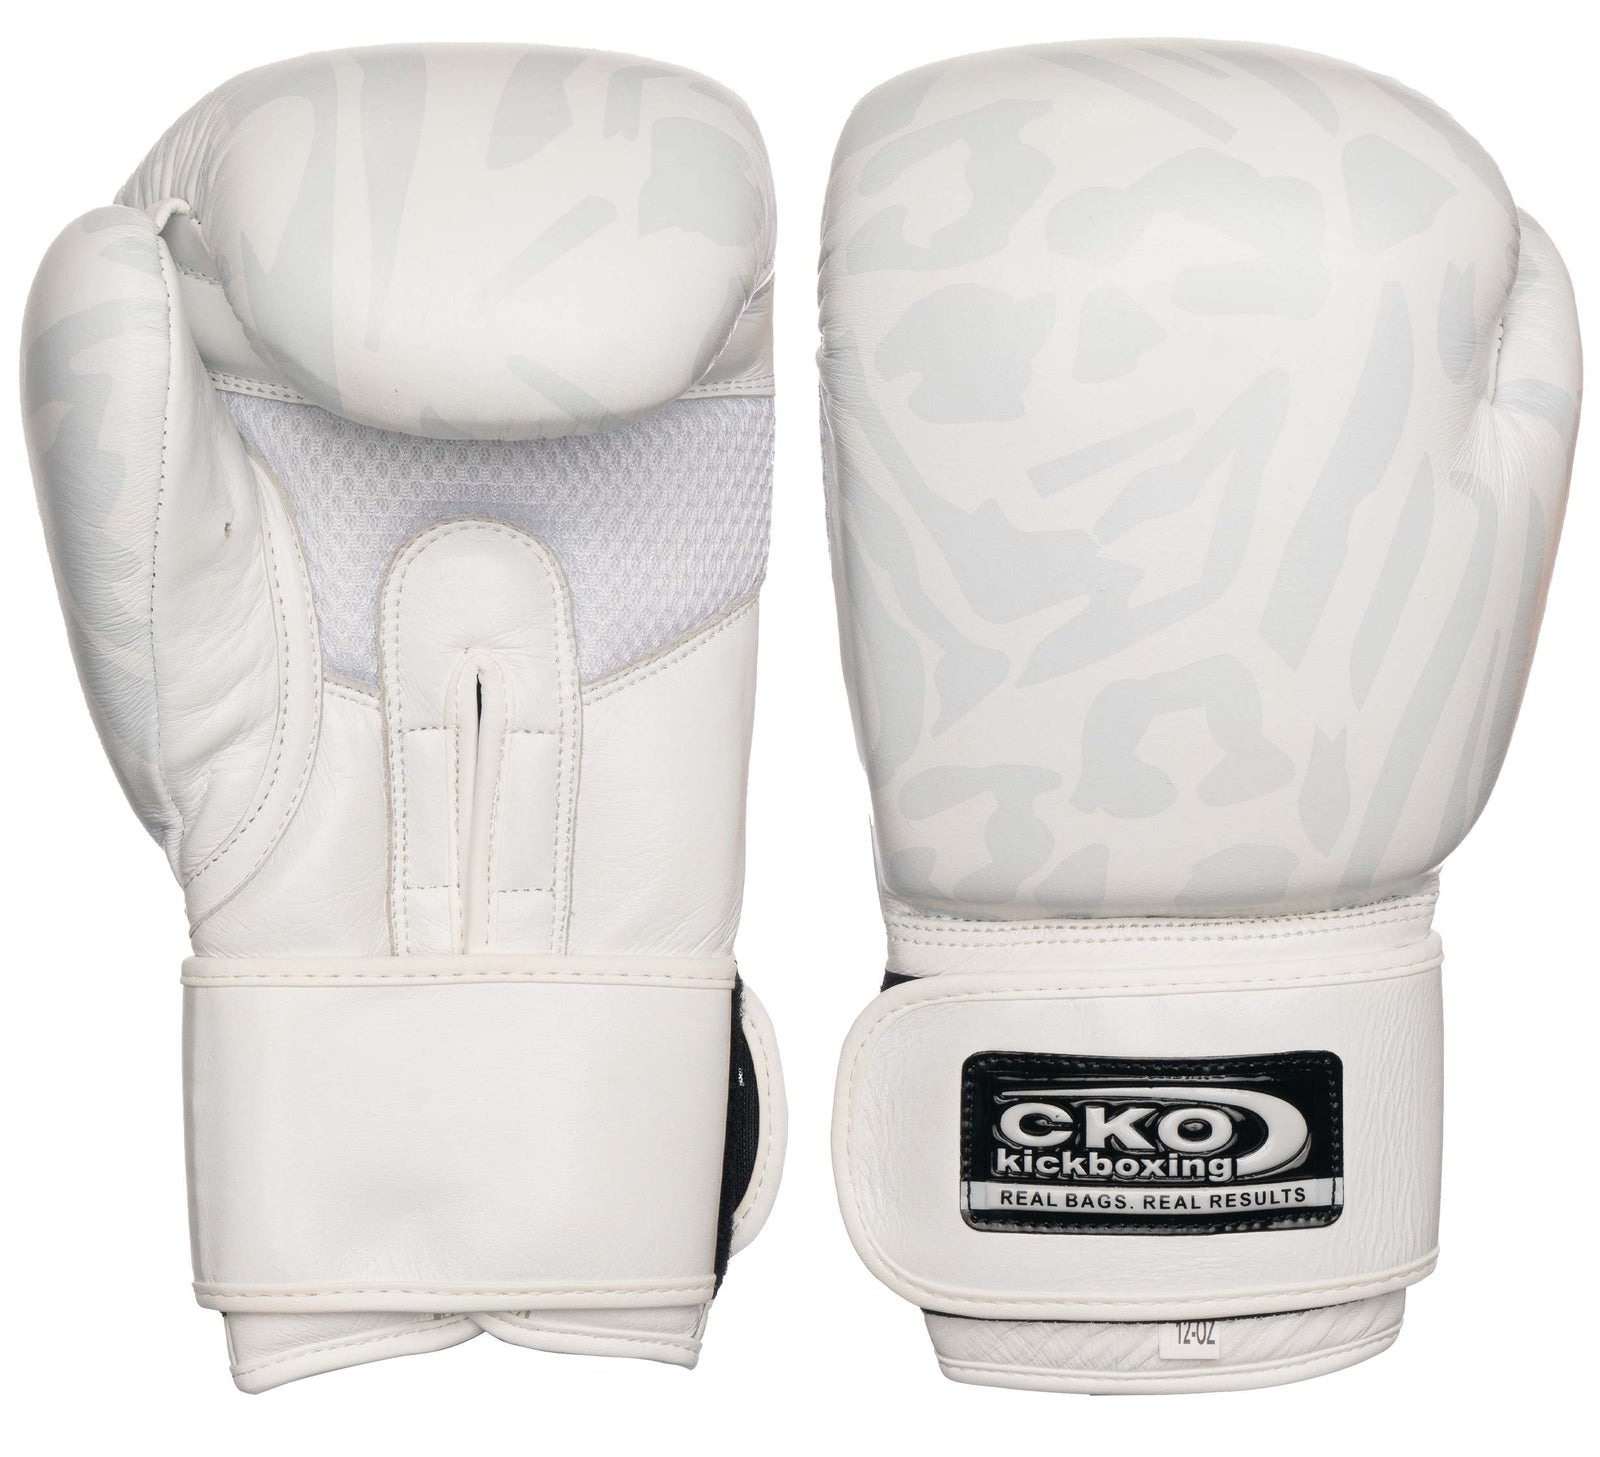 CKO Leather Boxing Gloves Leopard Print